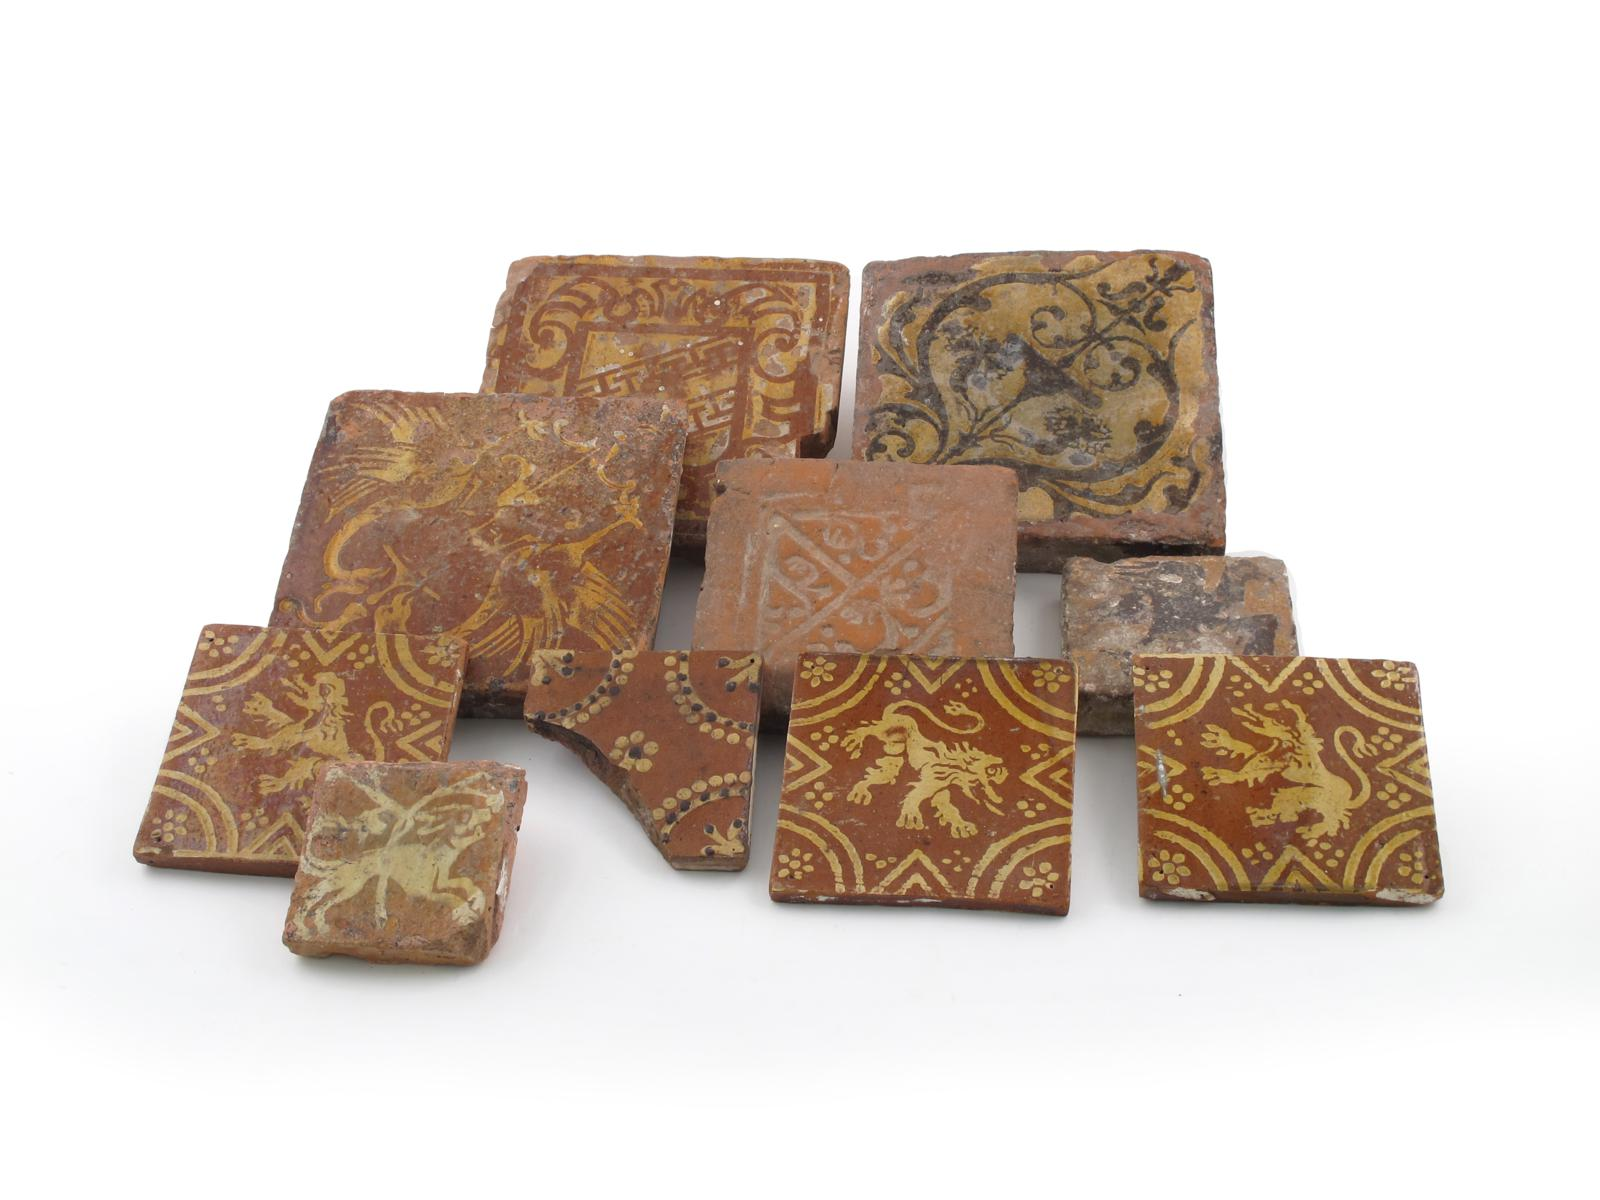 Ten encaustic and slipware tiles medieval and later lot 299 english european ceramics glass lot 299 dailygadgetfo Images